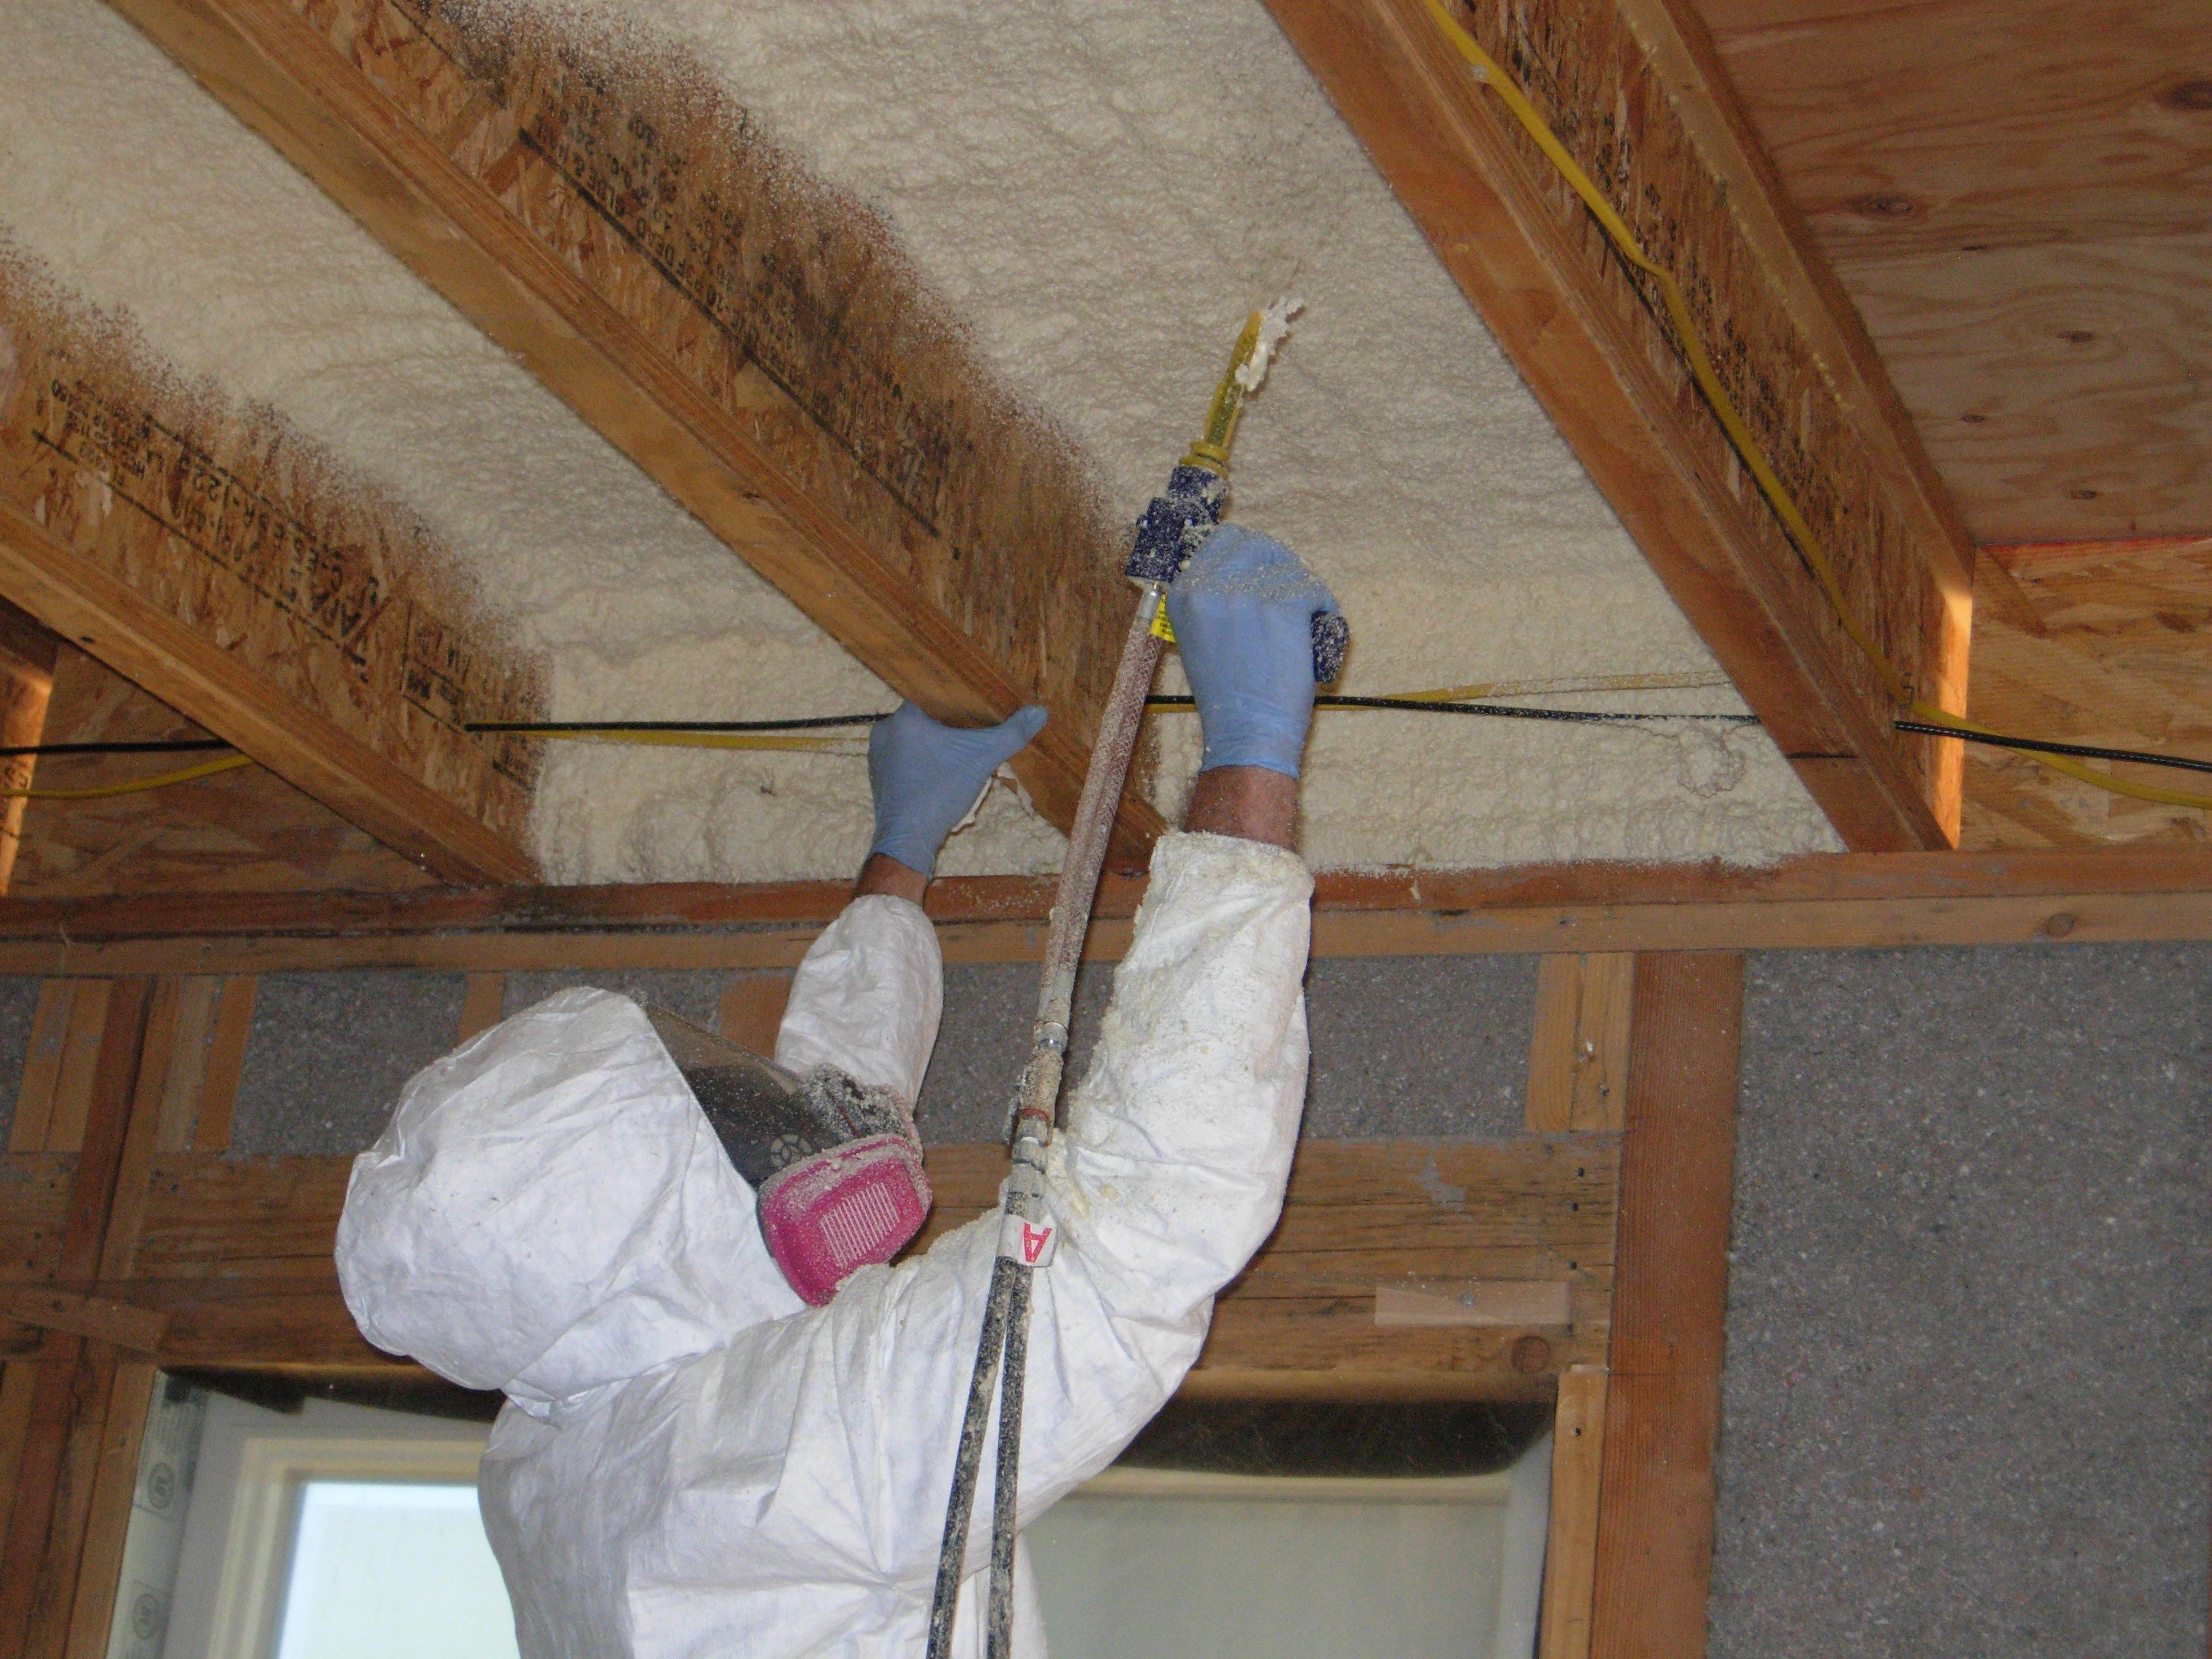 Spray Foam Insulation A Good Option For Flat Roofs And Vaulted Ceilings With No Attic Sp Garage Ceiling Insulation Attic Stair Insulation Basement Insulation